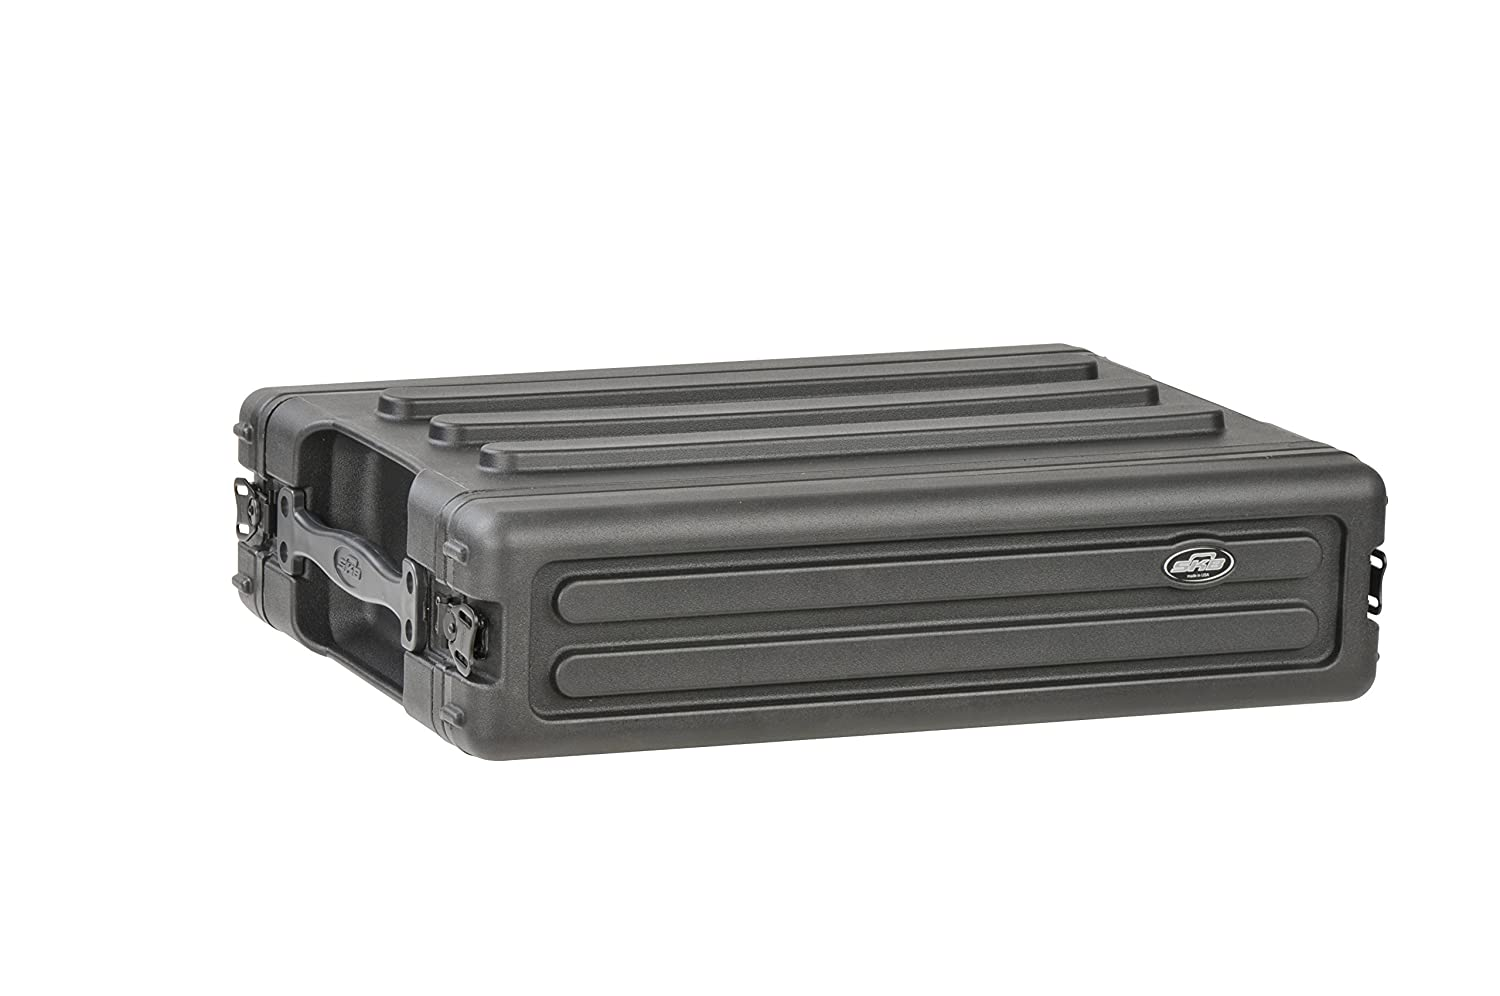 SKB 1SKB-R2S 2U Shallow Roto Rack with Steel Rails Front/Back, 10.5-Inch Deep Rail to Rail SKB Cases